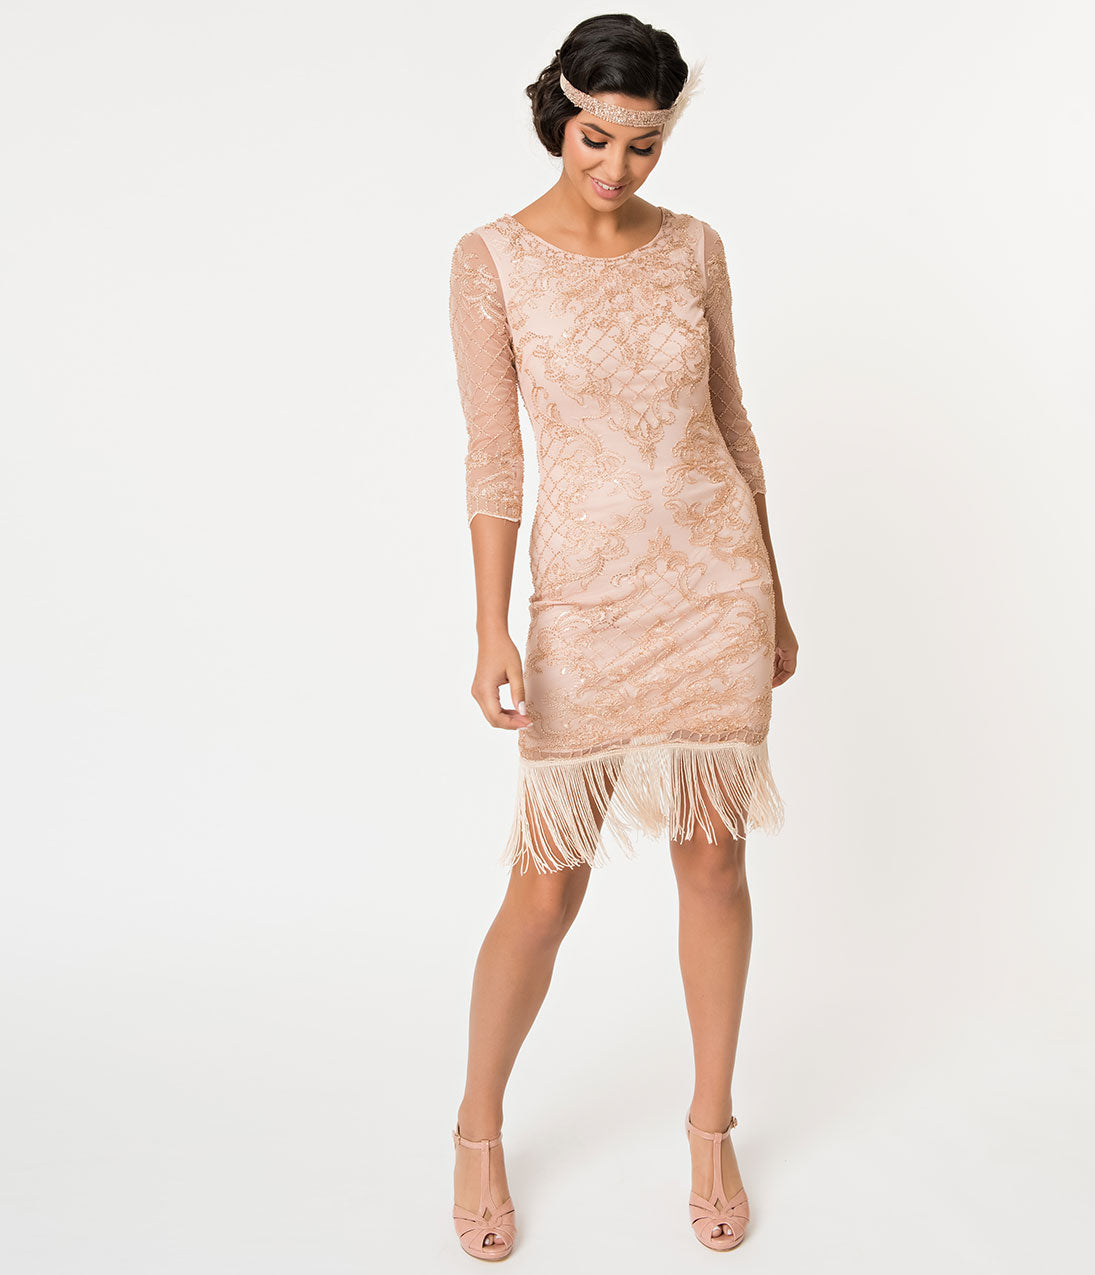 50 Vintage Halloween Costume Ideas 1920S Style Rose Pink  Gold Beaded Sleeved Fringe Flapper Dress $110.00 AT vintagedancer.com